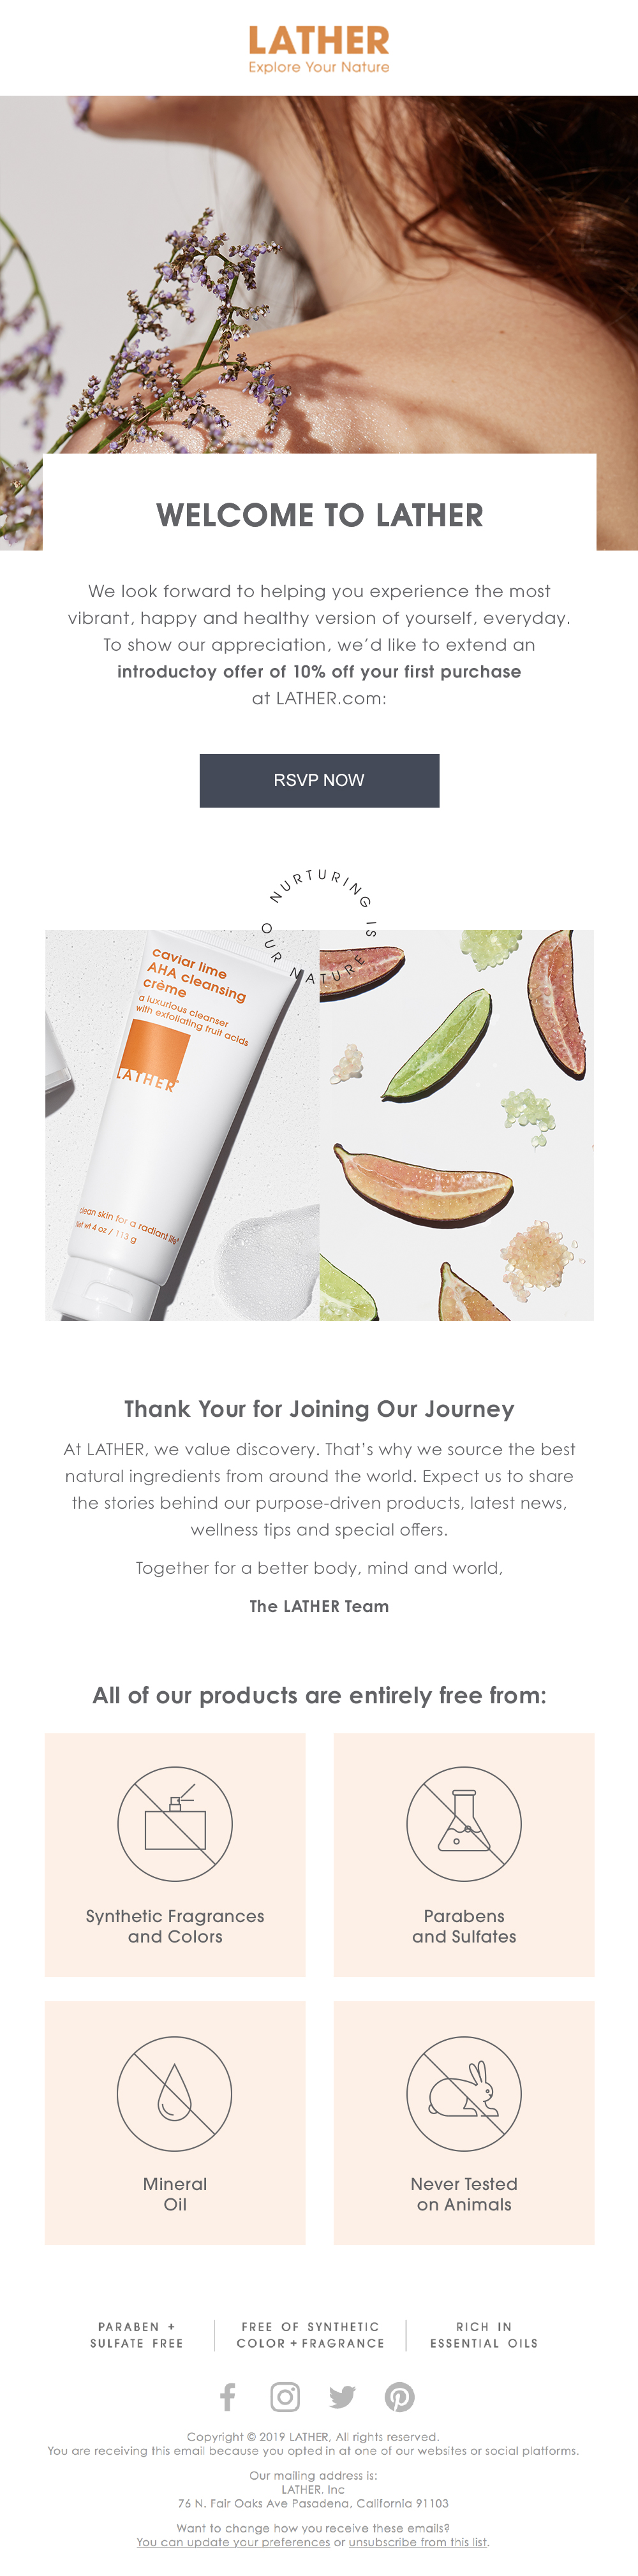 LATHER Welcome Email Series 1